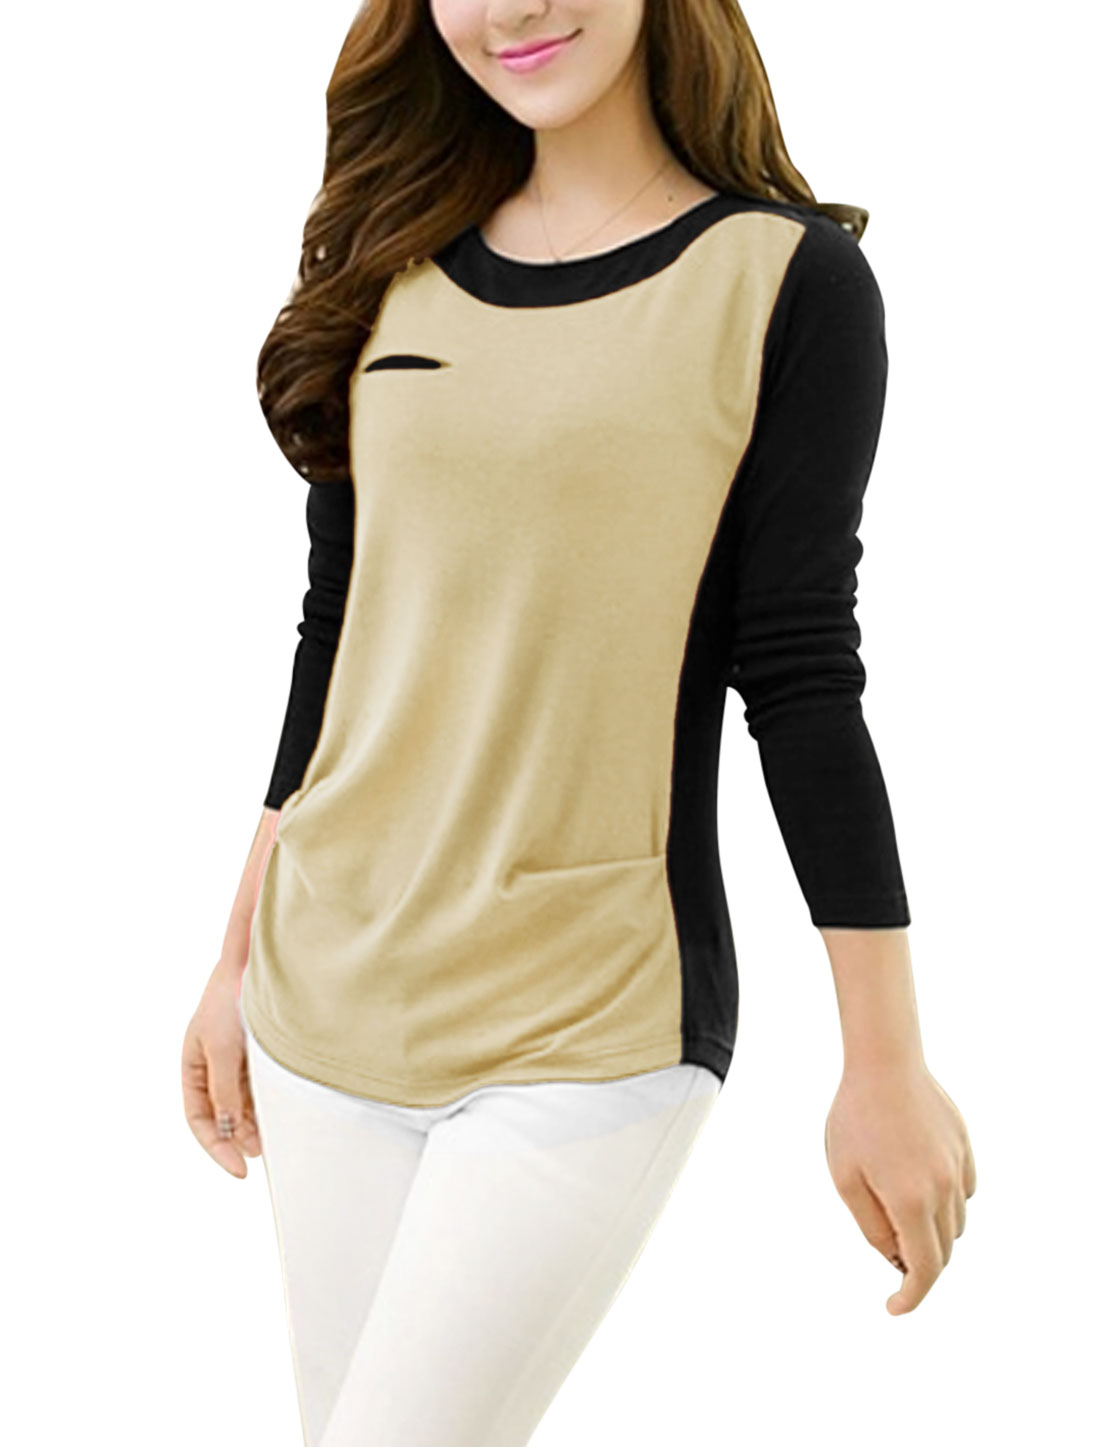 Lady Contrast Color Fake Bust Pocket Decor Long Sleeve Top Cream-Beige Black S